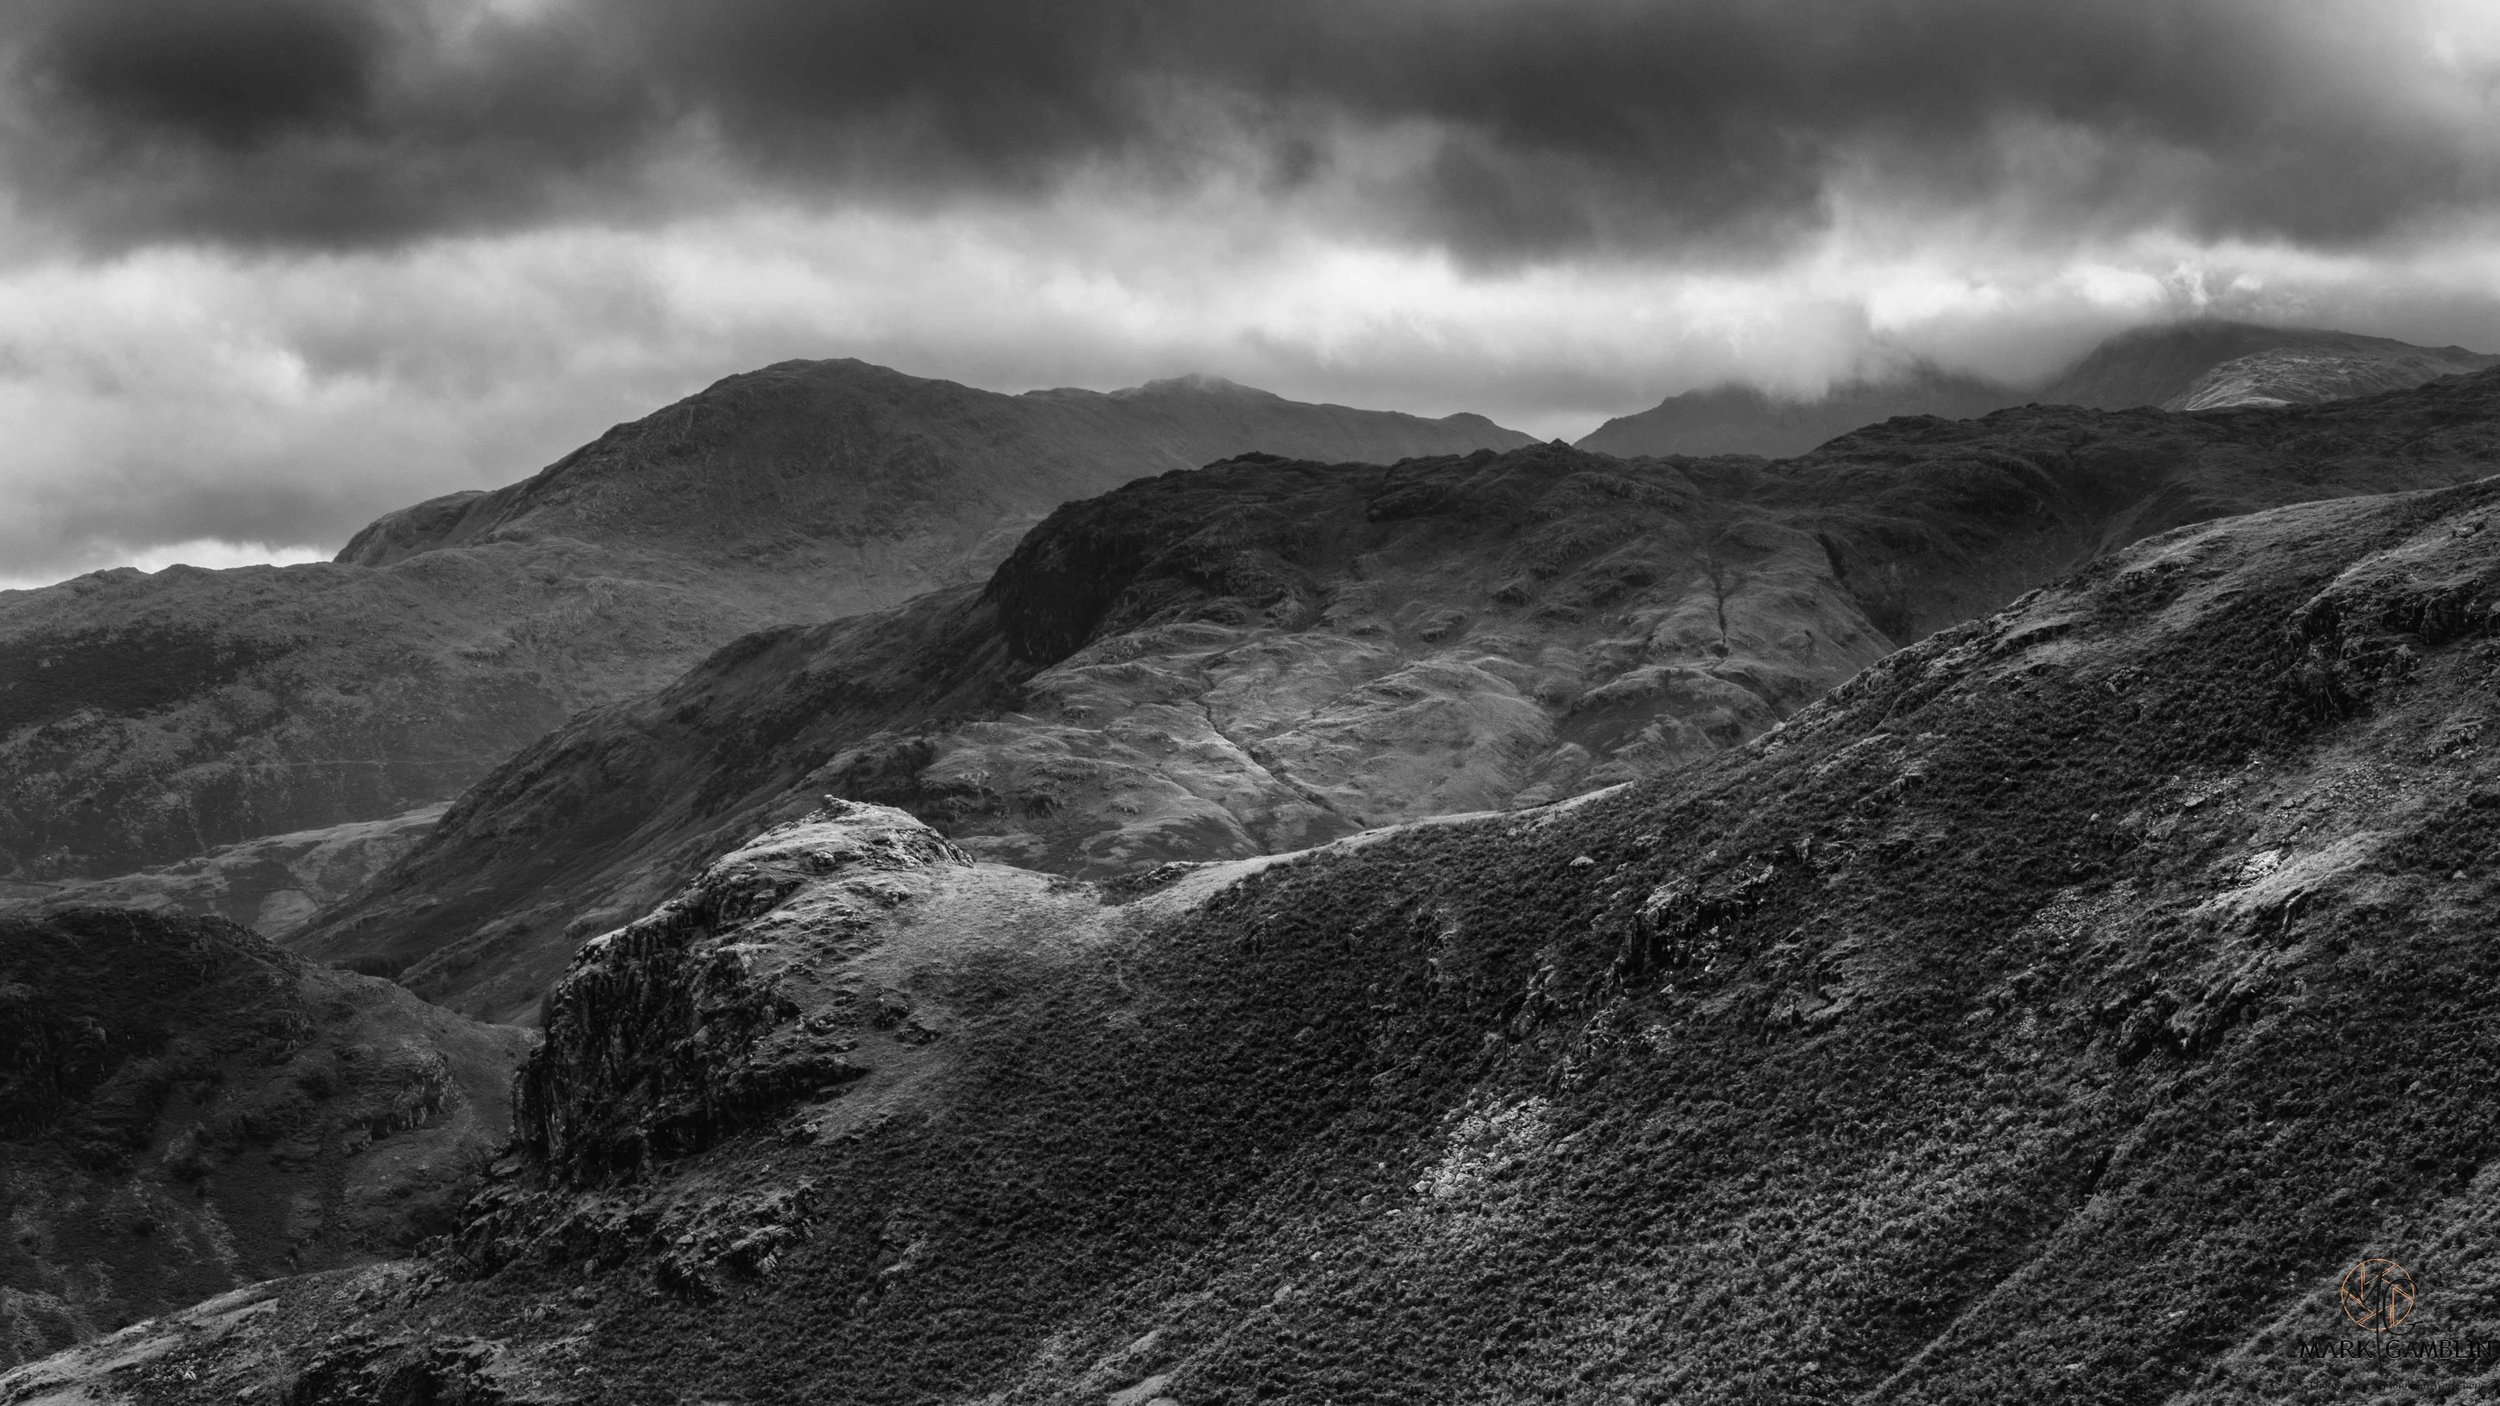 Sat 13th april 2019 -Great Langdale photography workshop - Guided landscape photography tour of the Langdale Valley in The Lake District. Photography tuition and post processing crash course provided£50 per person